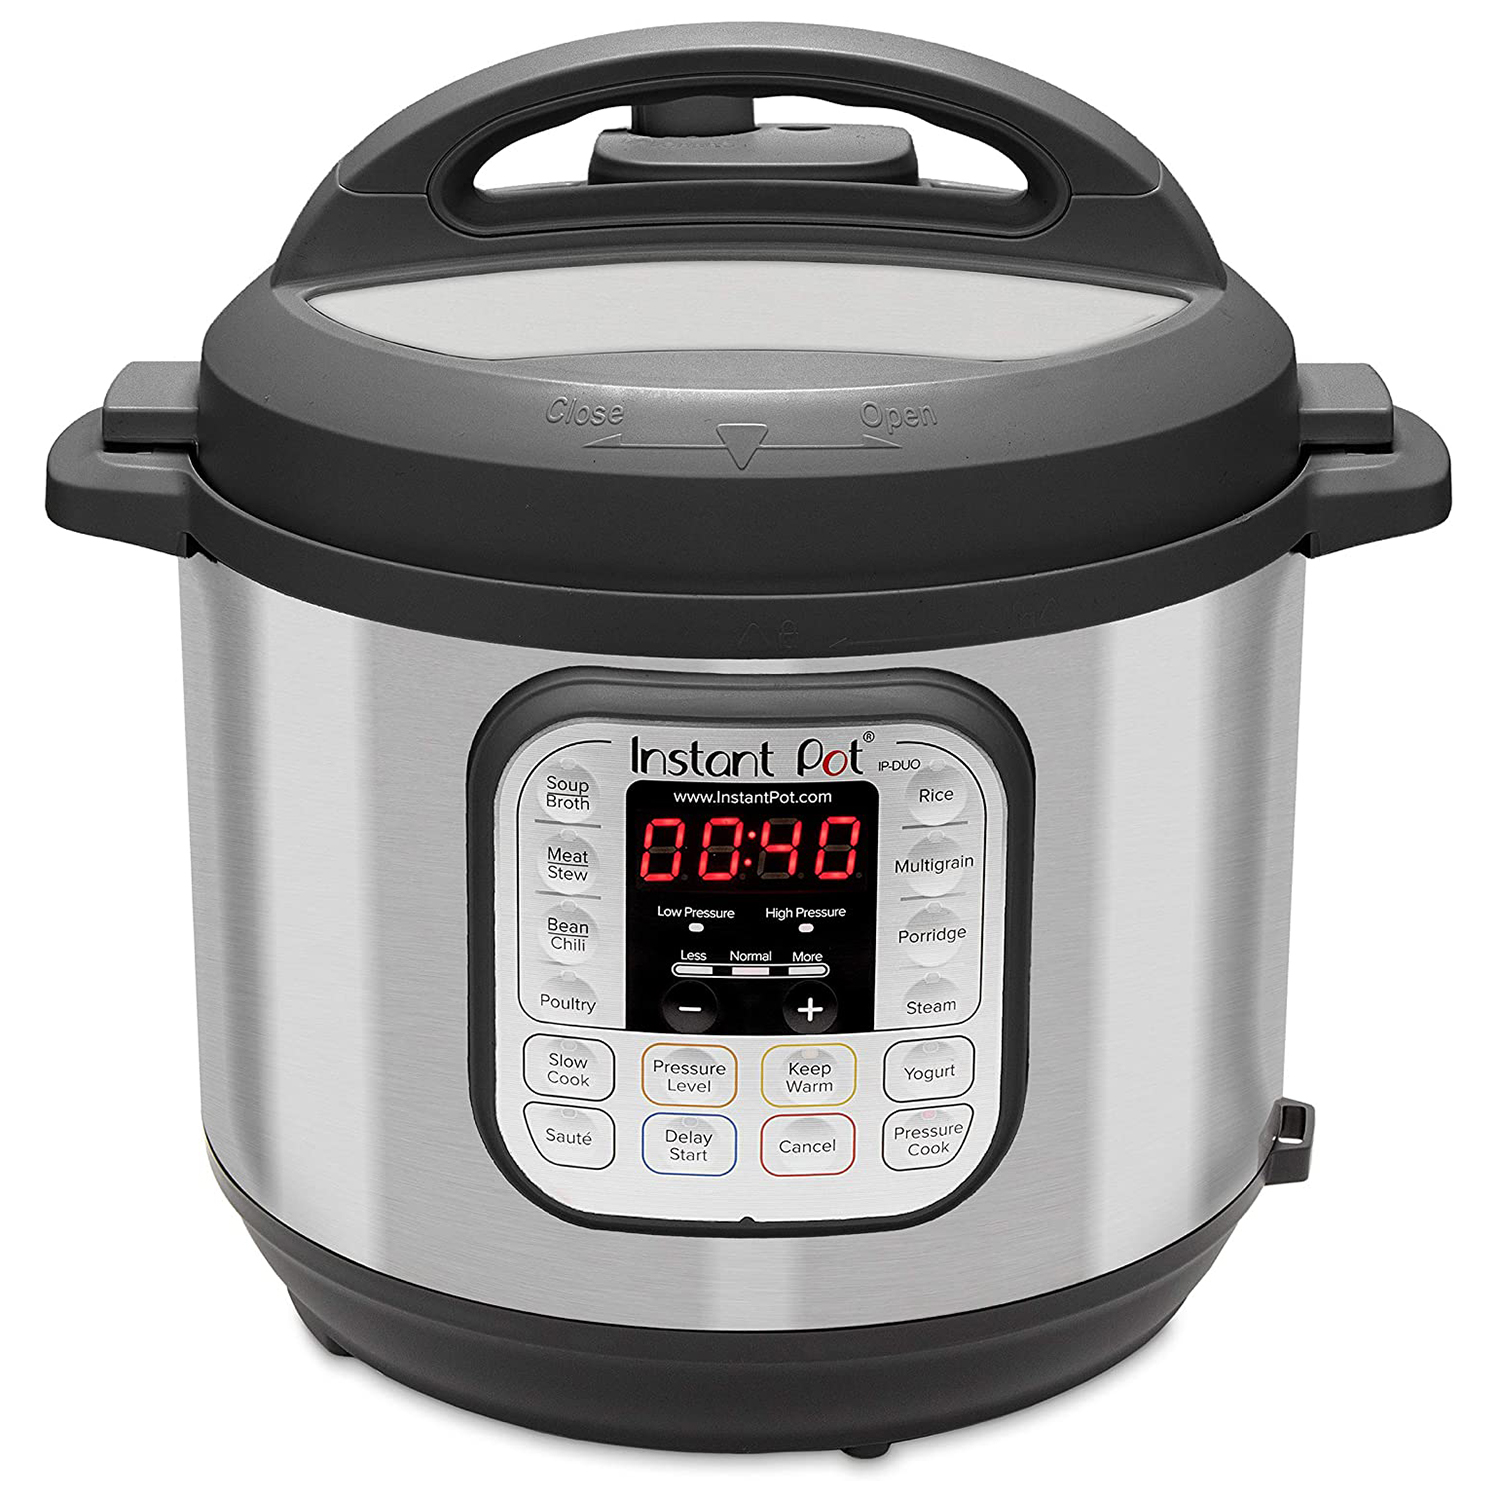 Instant Pot Duo 7-in-1 Electric Pressure Cooker in Black on white background